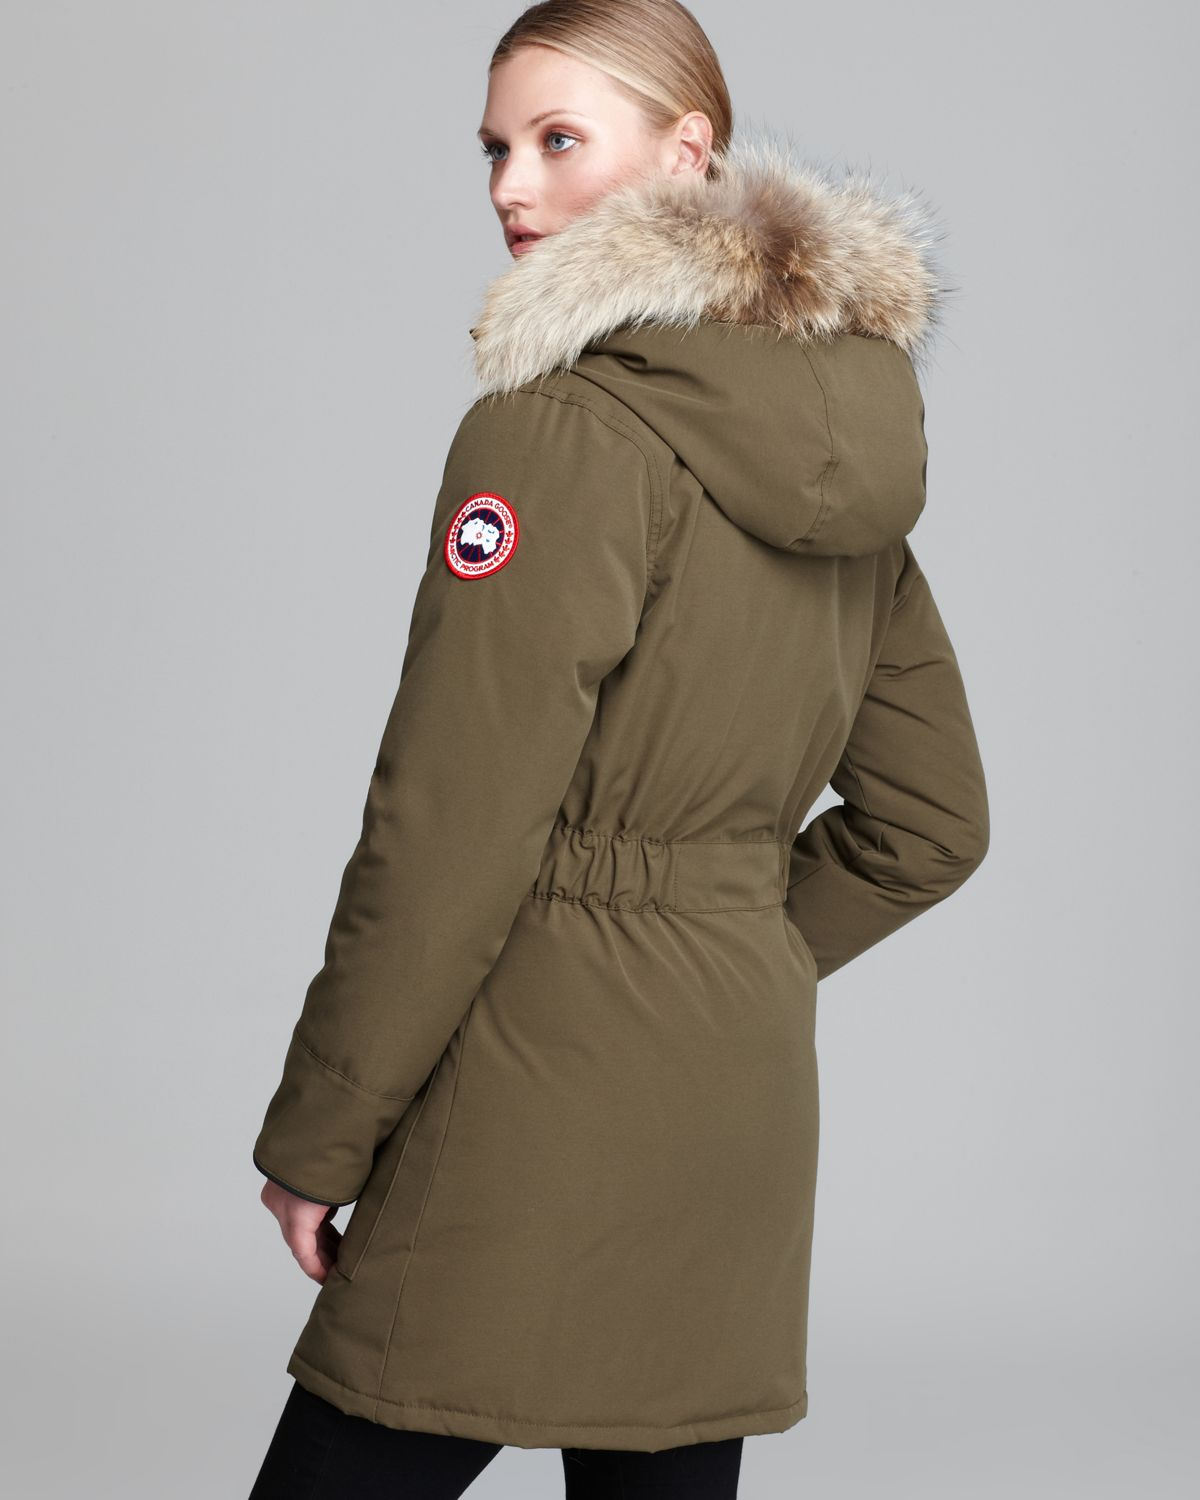 Canada Goose jackets sale cheap - Canada goose Trillium Parka in Green (Military Green) | Lyst